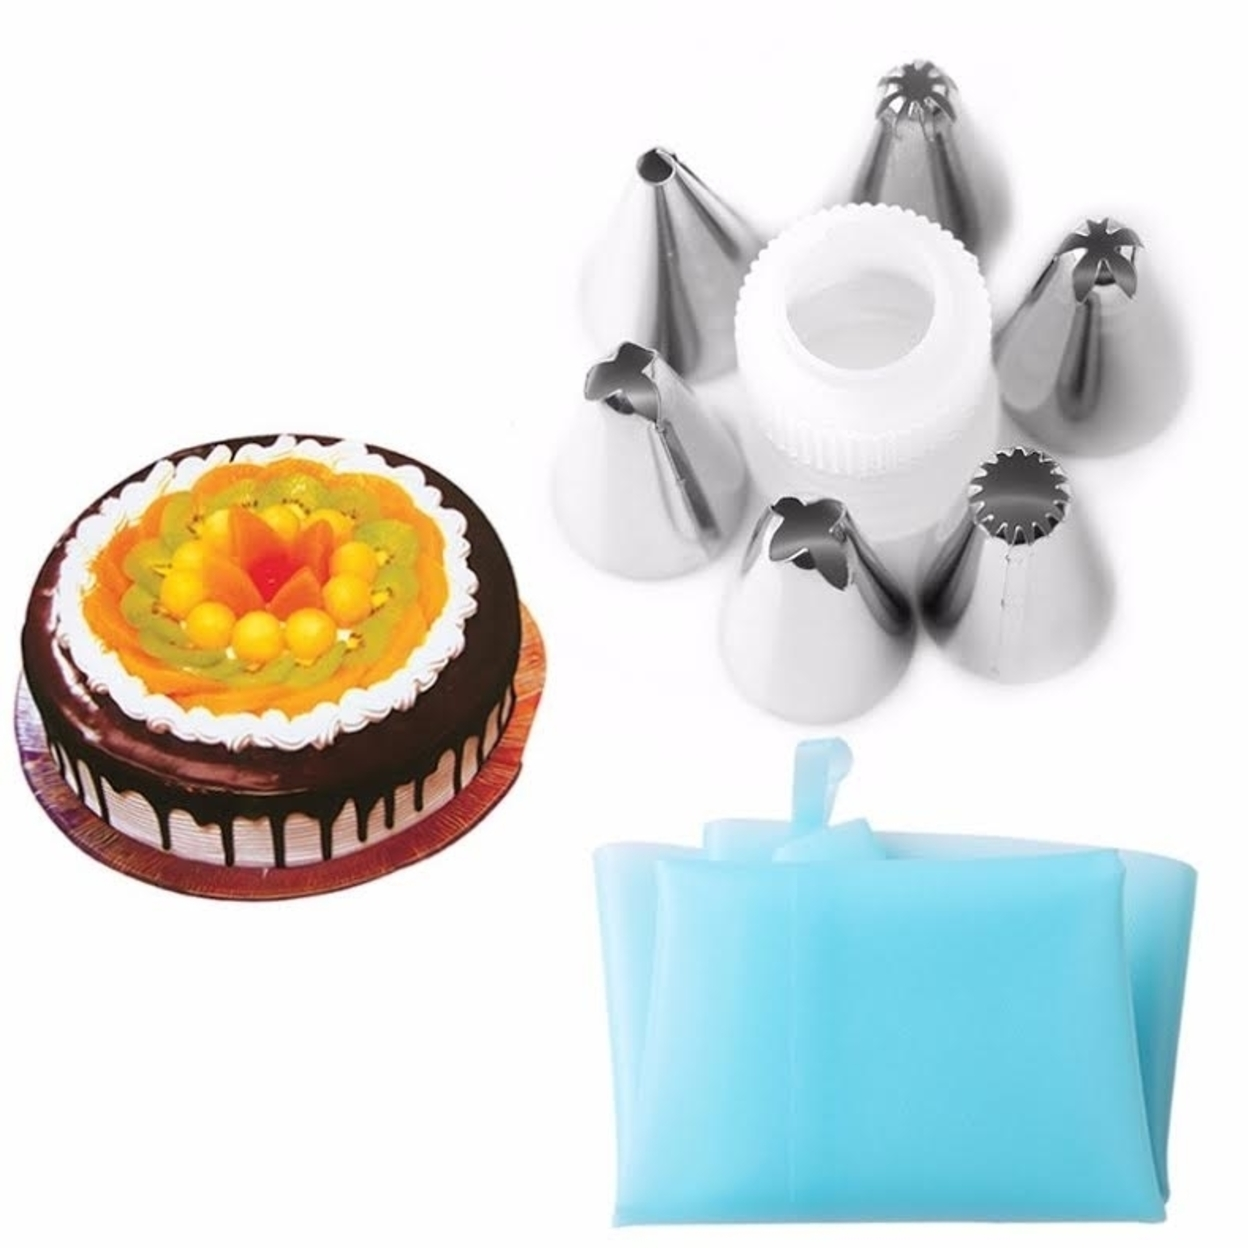 Cake Decorating Tool 58c6fa8dfa08eb2bee41dbdb